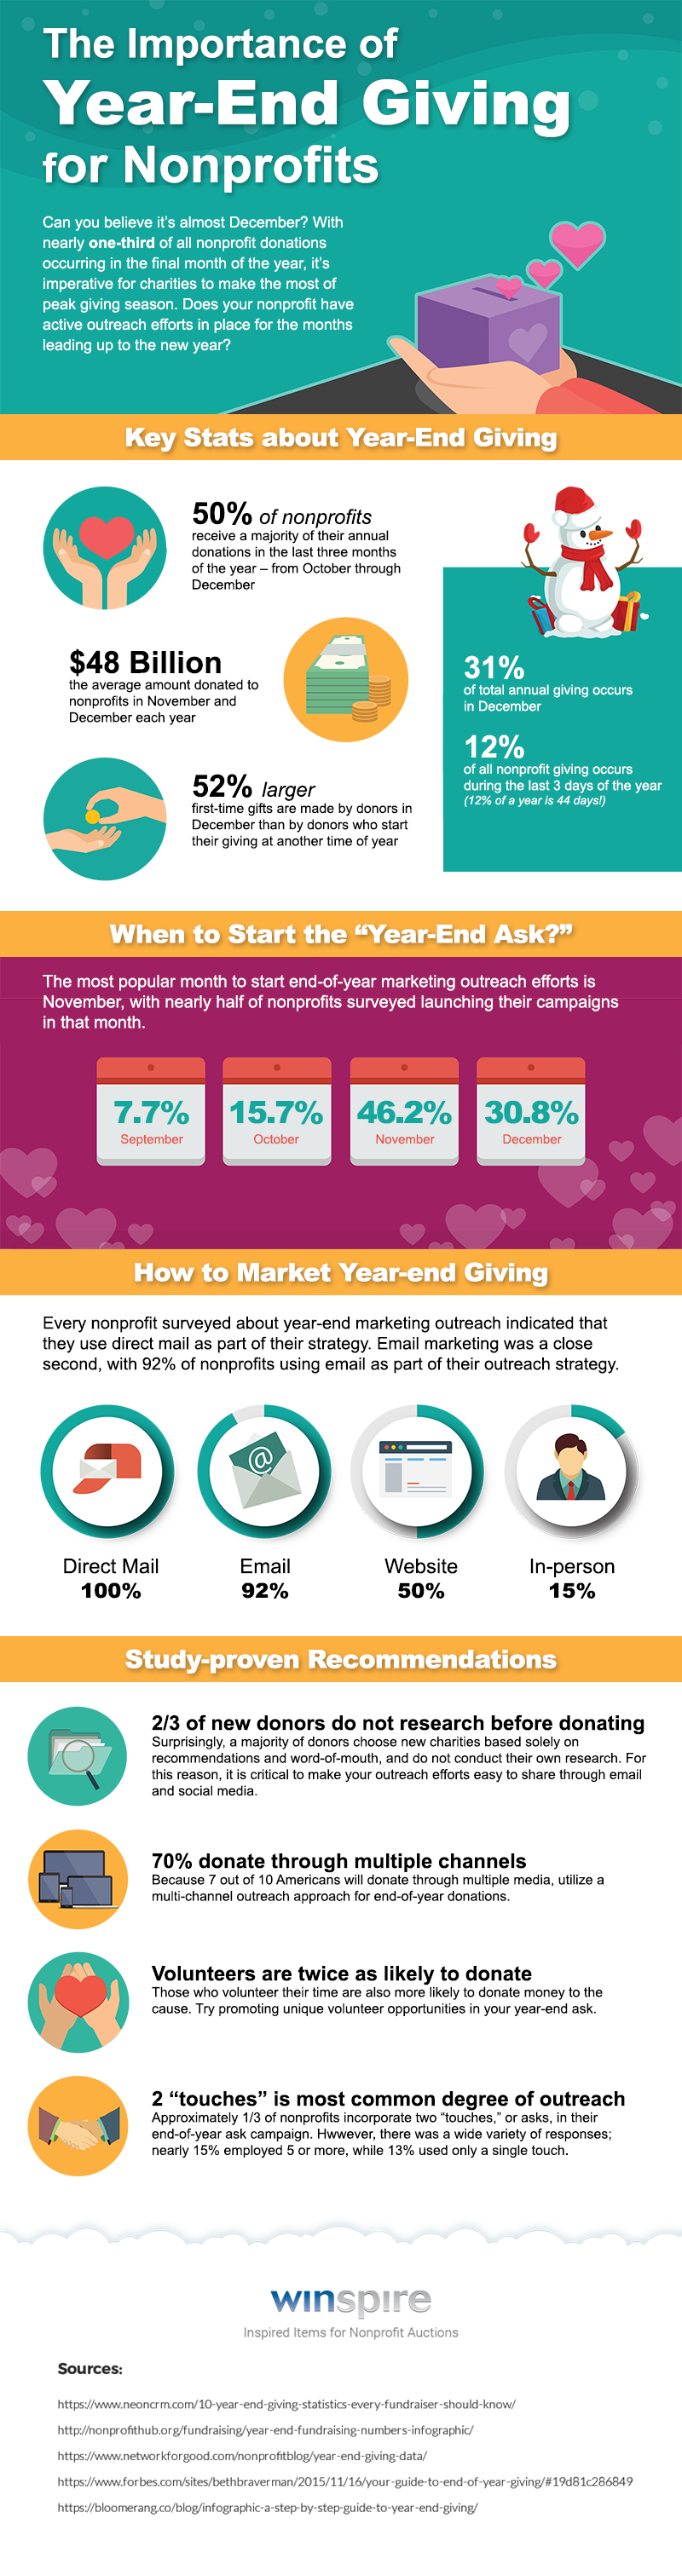 The Importance of Year End Giving Infographic by Winspire